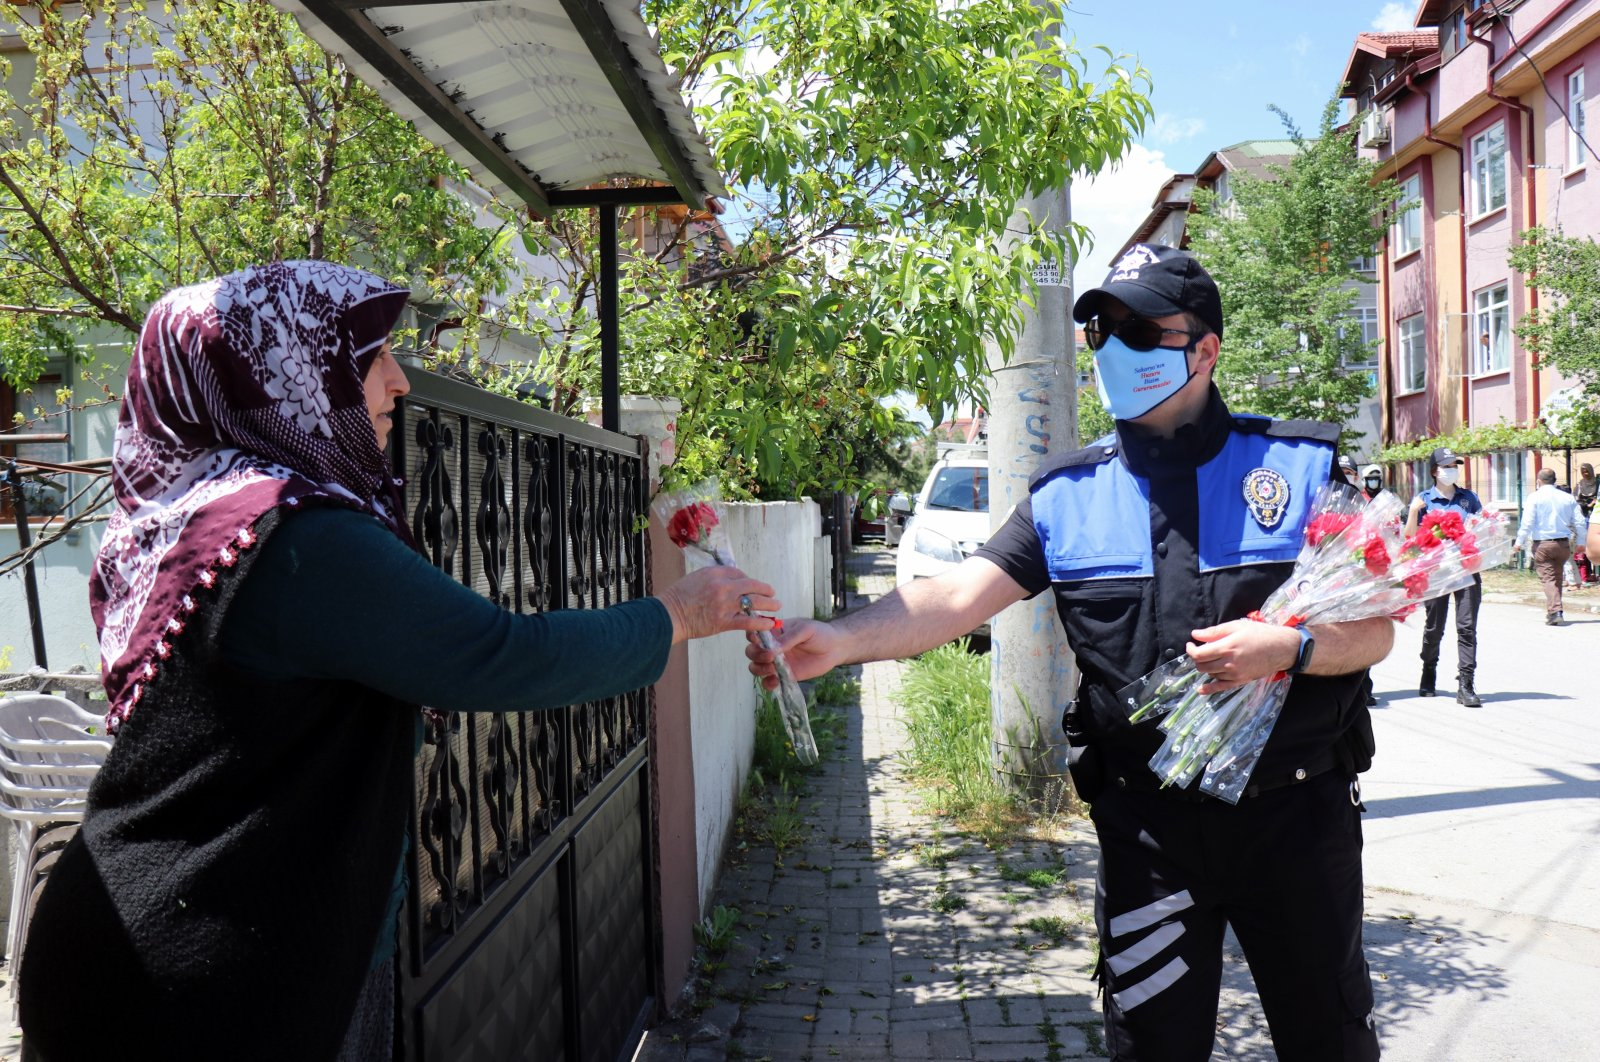 A police officer hands a flower to a woman on the occasion of Mother's Day, in Sakarya, northwestern Turkey, May 9, 2021. (İHA PHOTO)